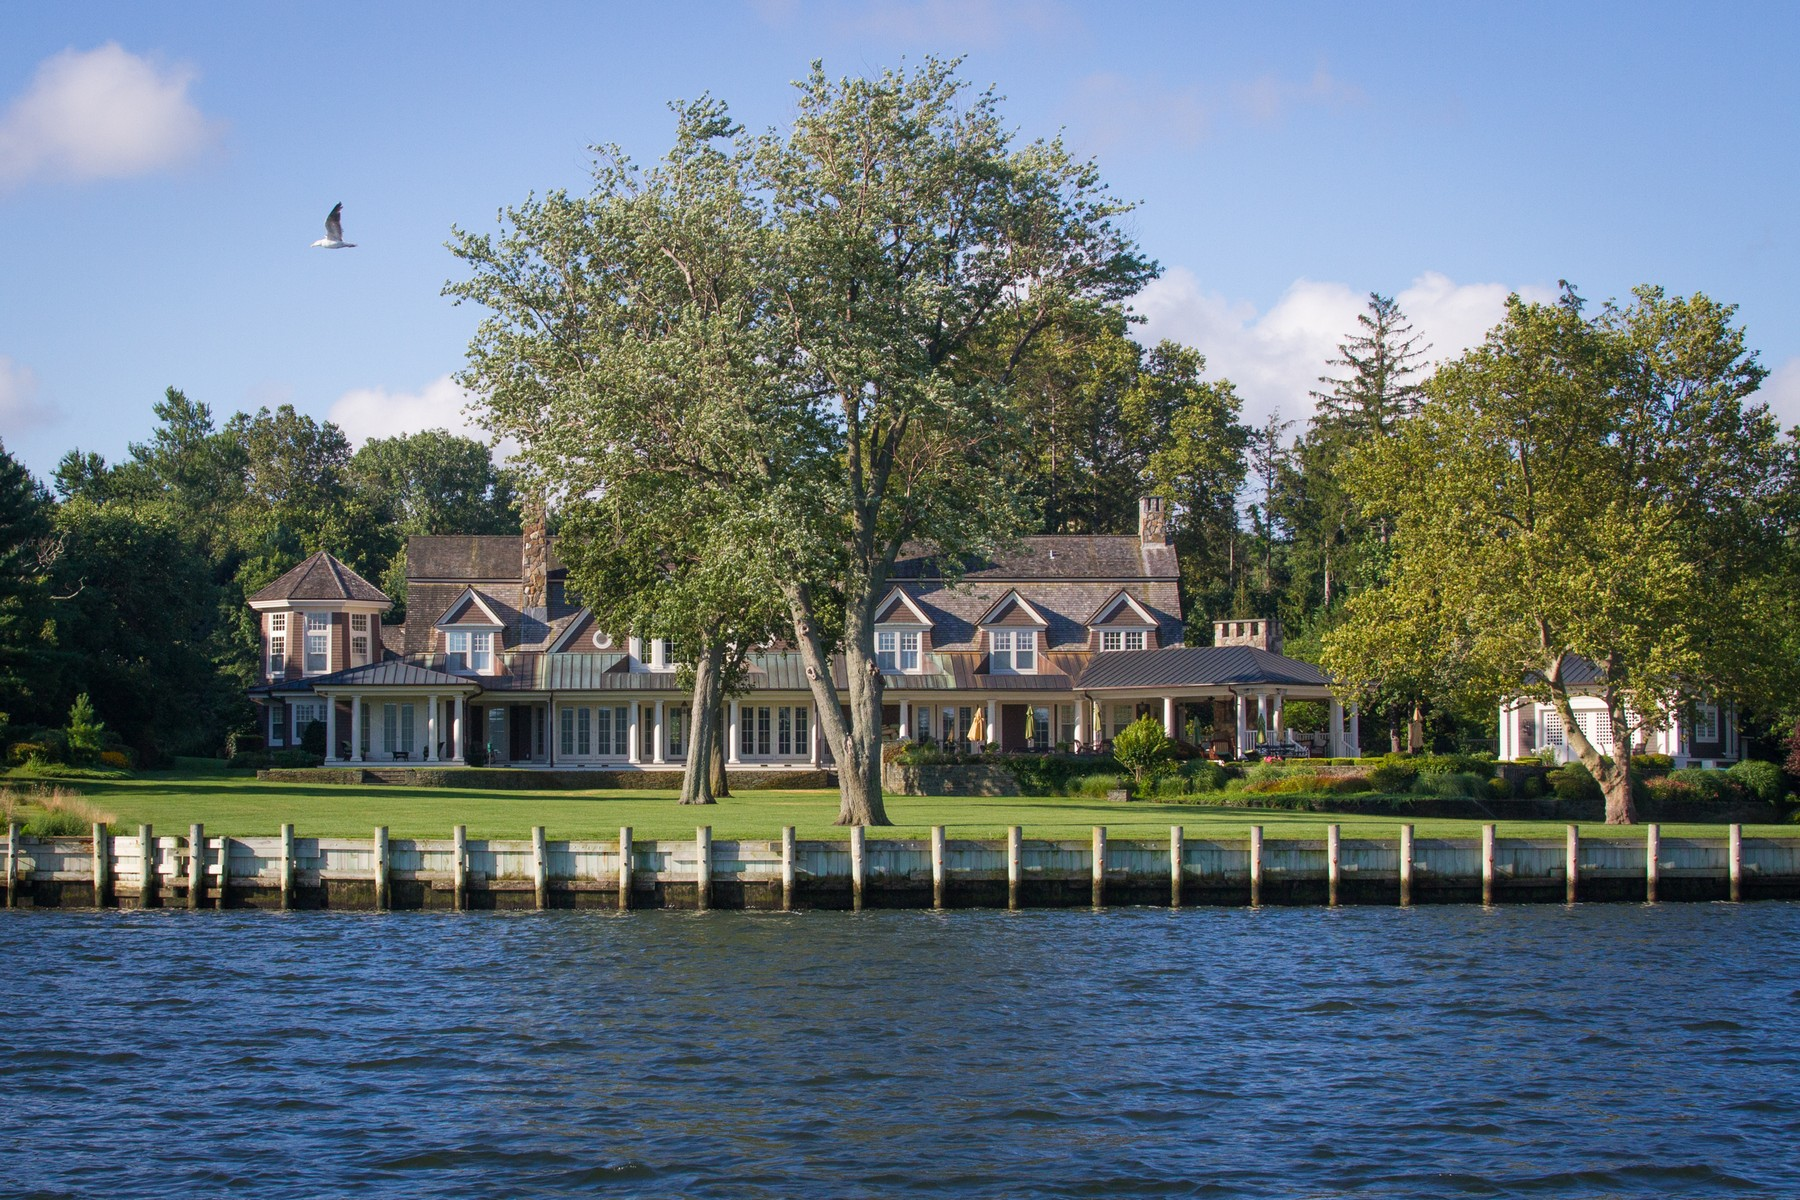 Single Family Home for Sale at Riverblades Estate 74 West River Road Rumson, New Jersey 07760 United States